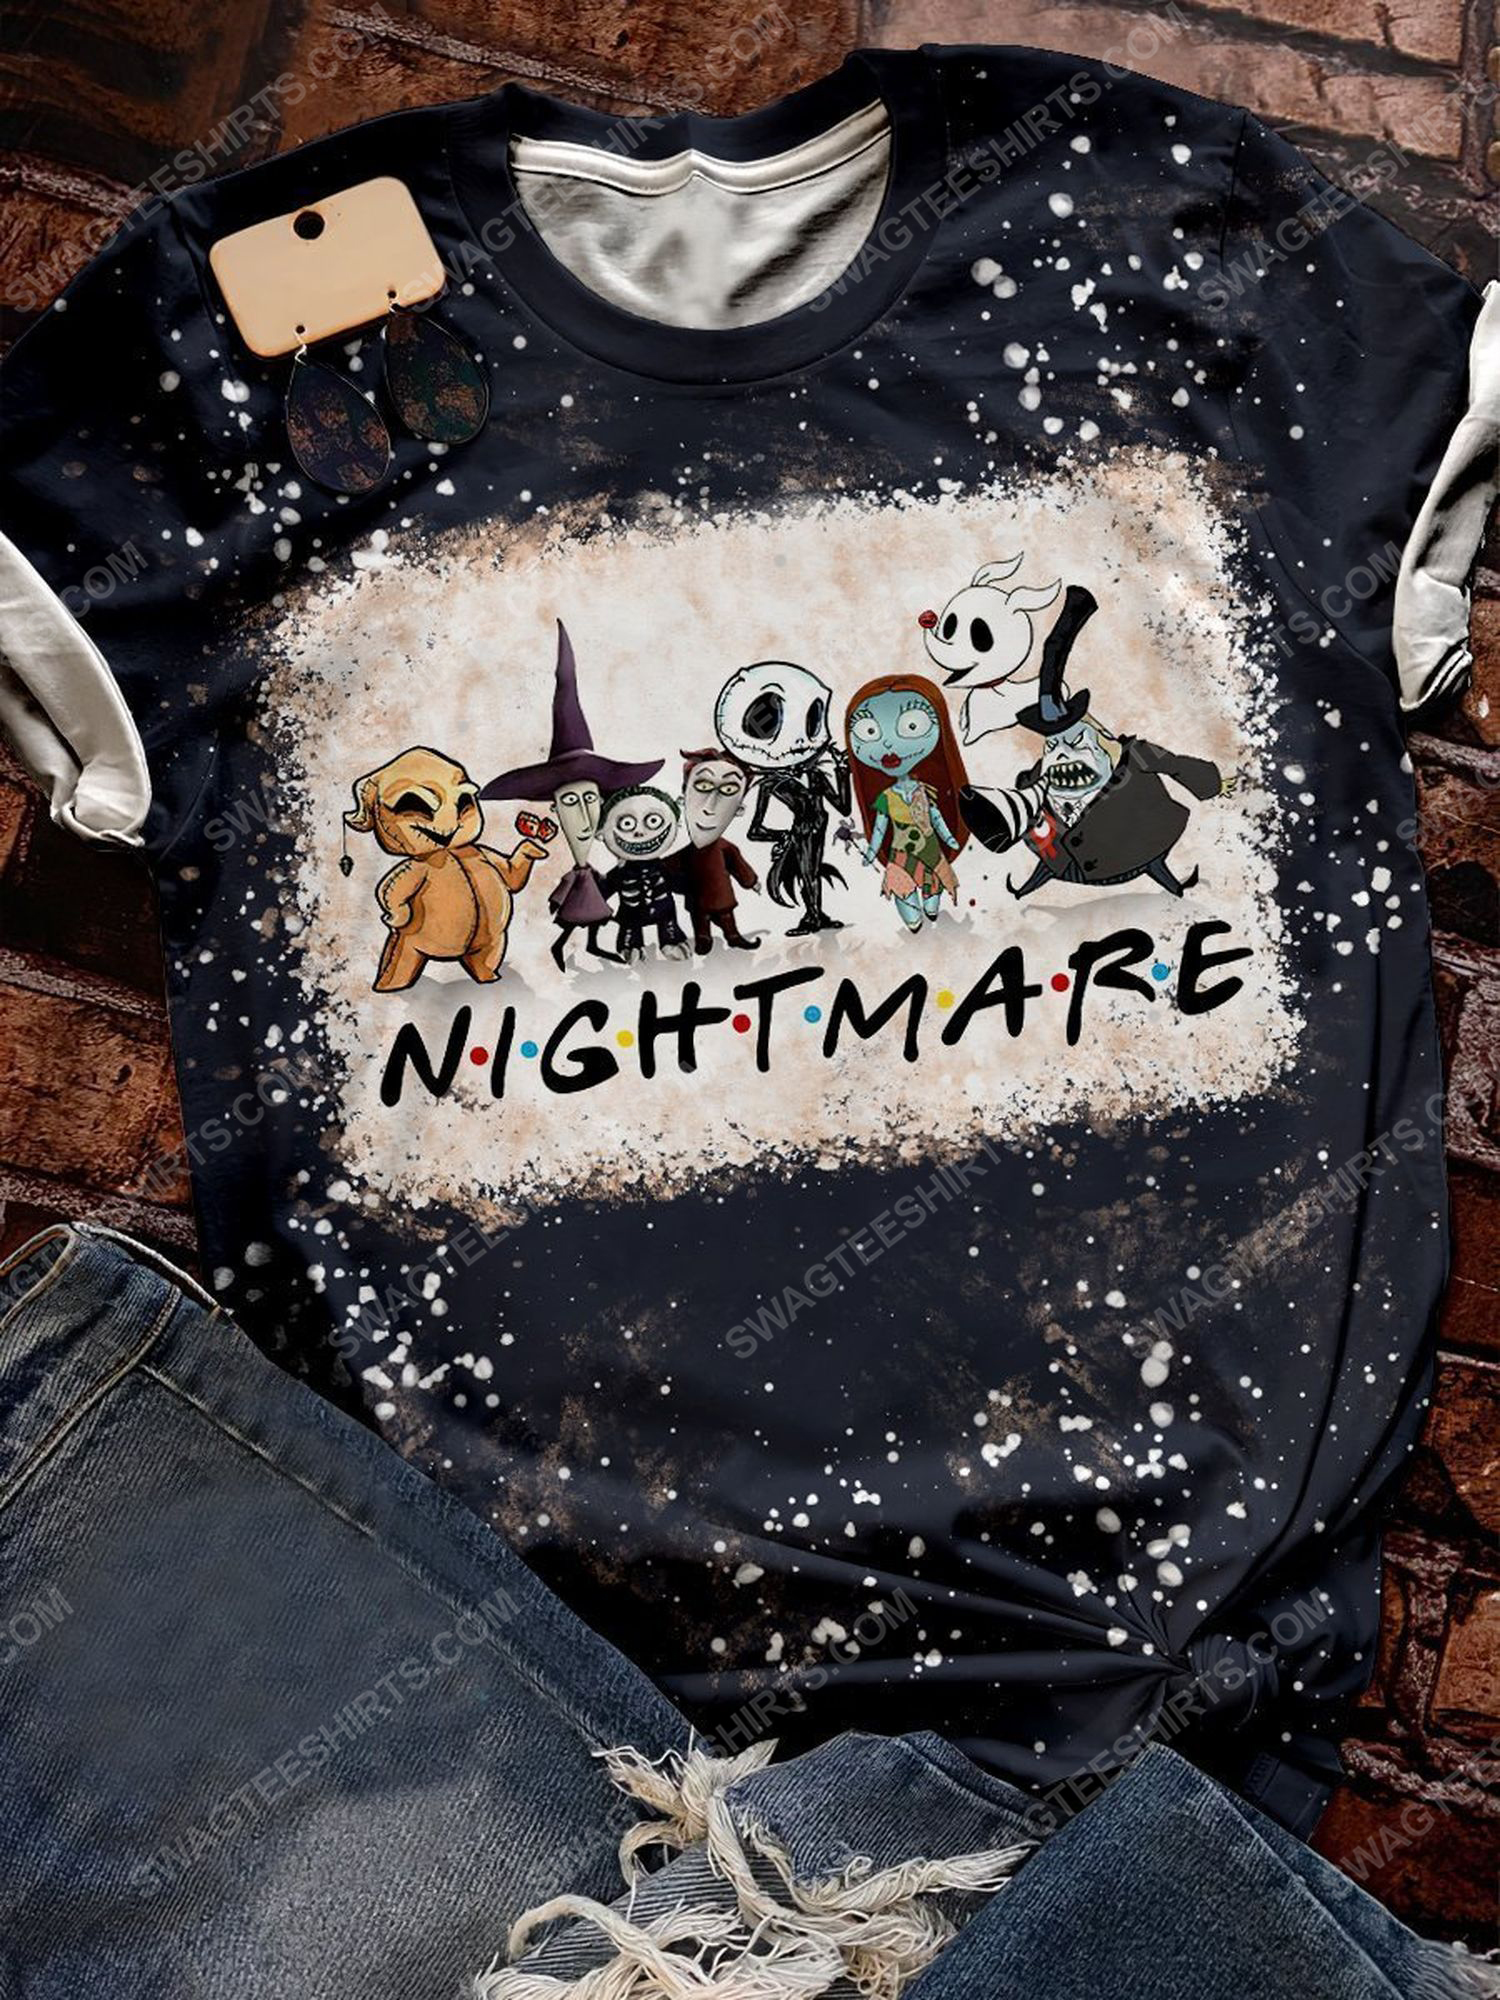 The nightmare before christmas bleached shirt 1 - Copy